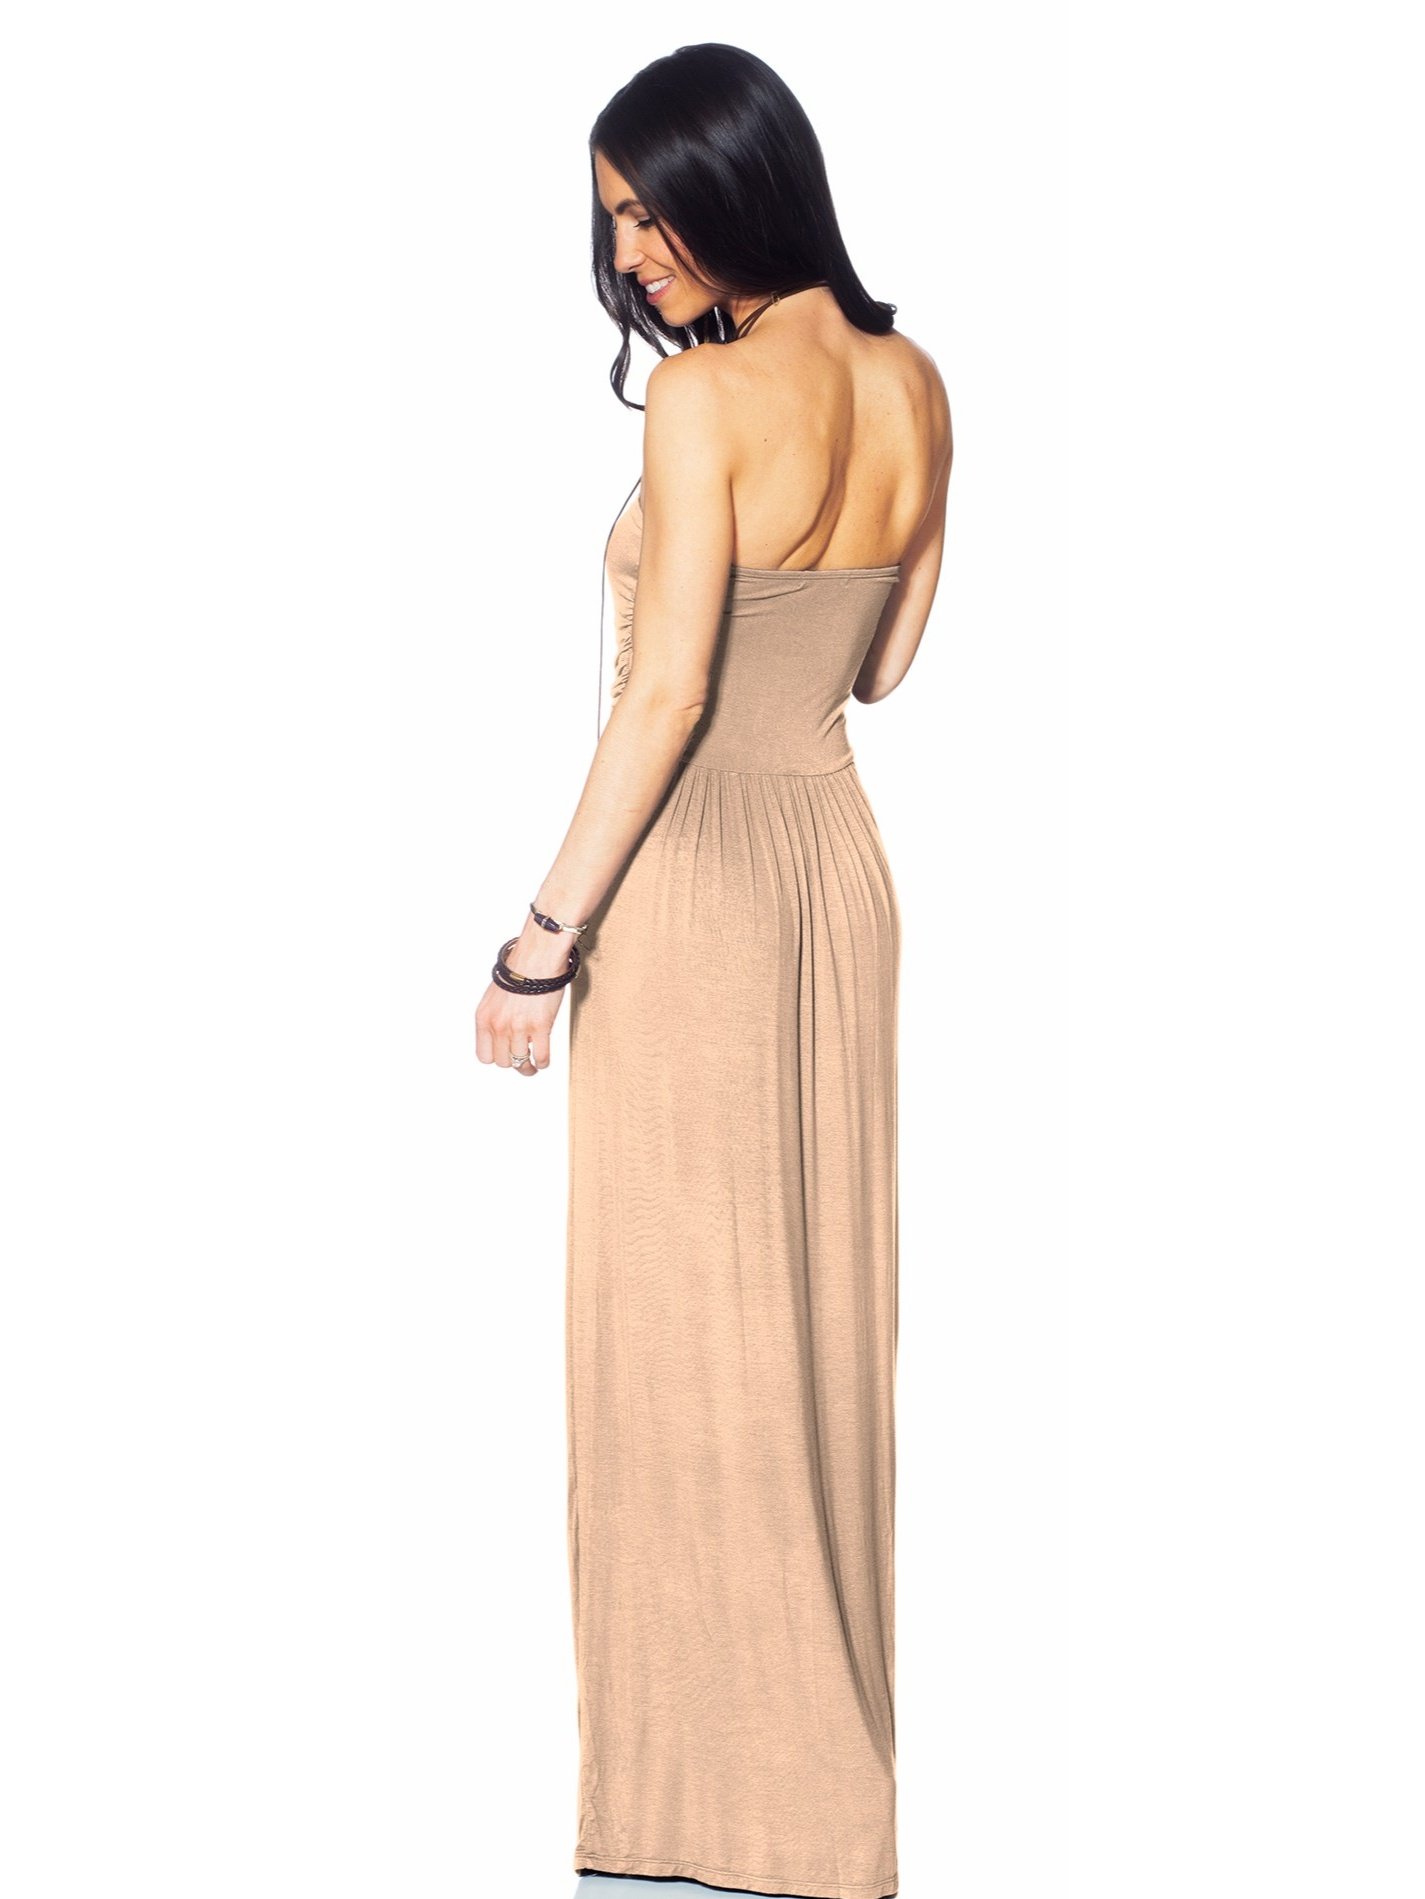 392630448a Hot From Hollywood - Womens Strapless Tube Top Ruched Fit and Flare Casual  Maxi Dress with Pockets - Walmart.com